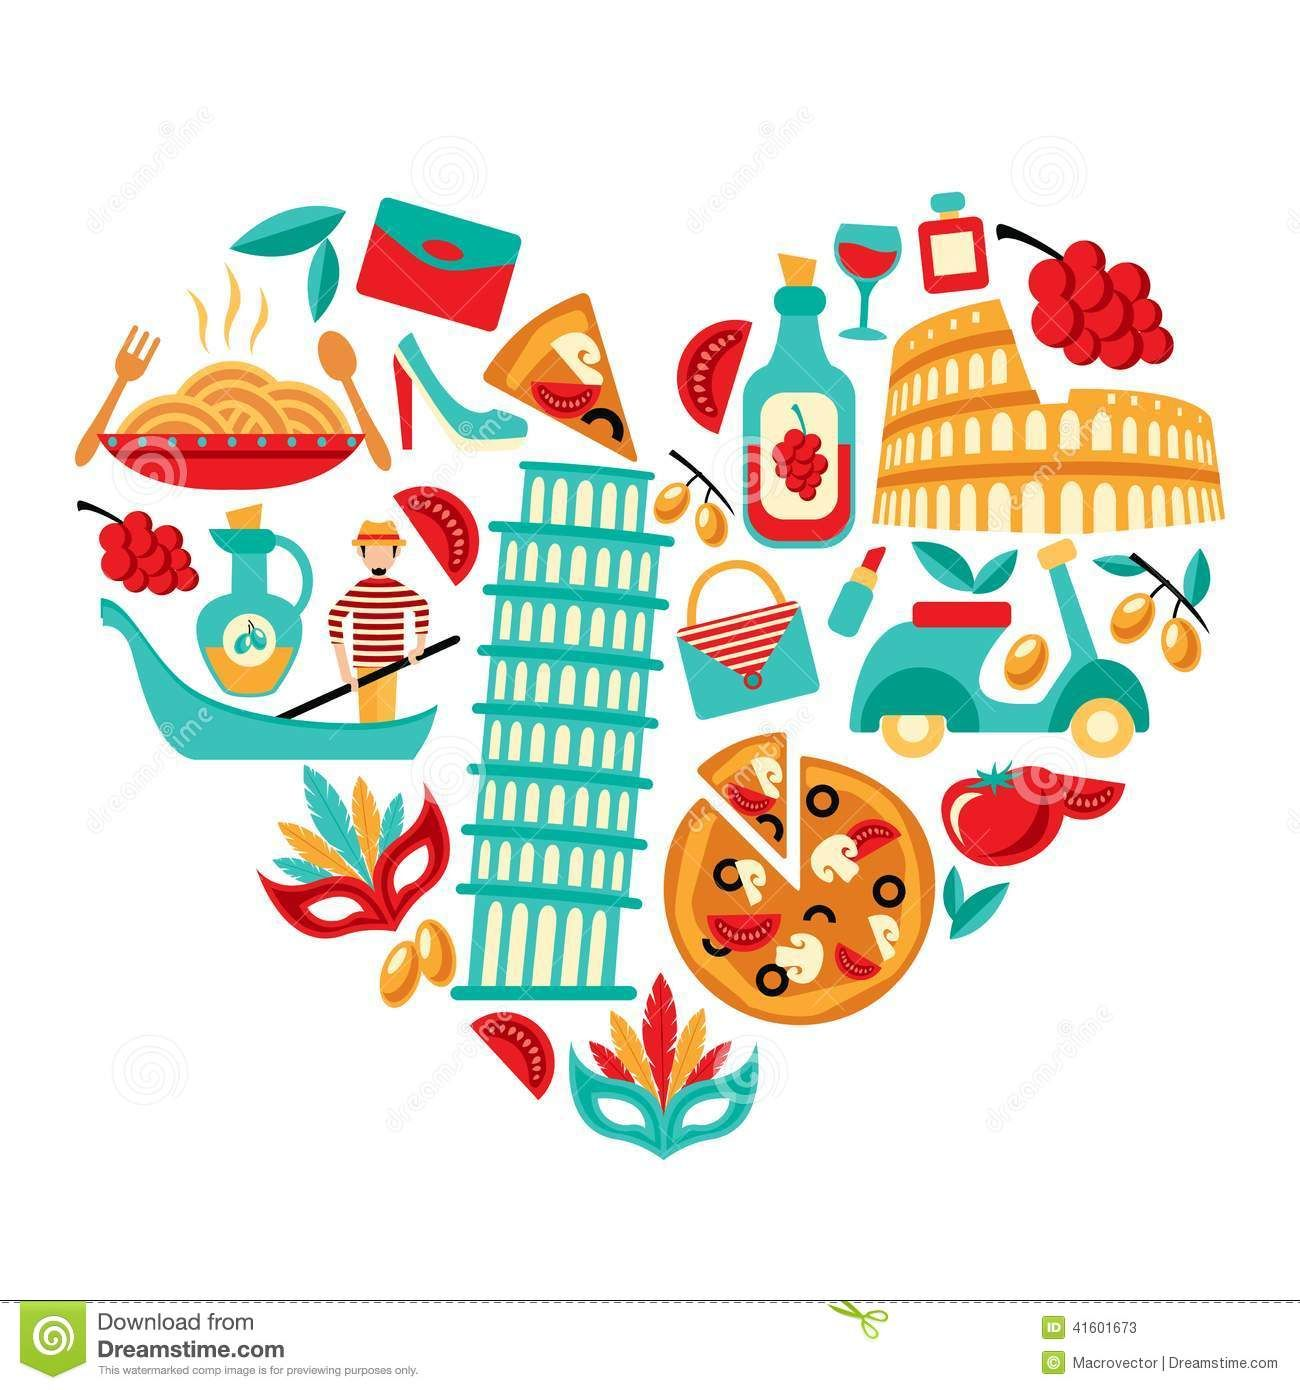 Heart stock illustration royalty free illustrations stock clip art - Italy Stock Illustrations Vectors Clipart 16 337 Stock